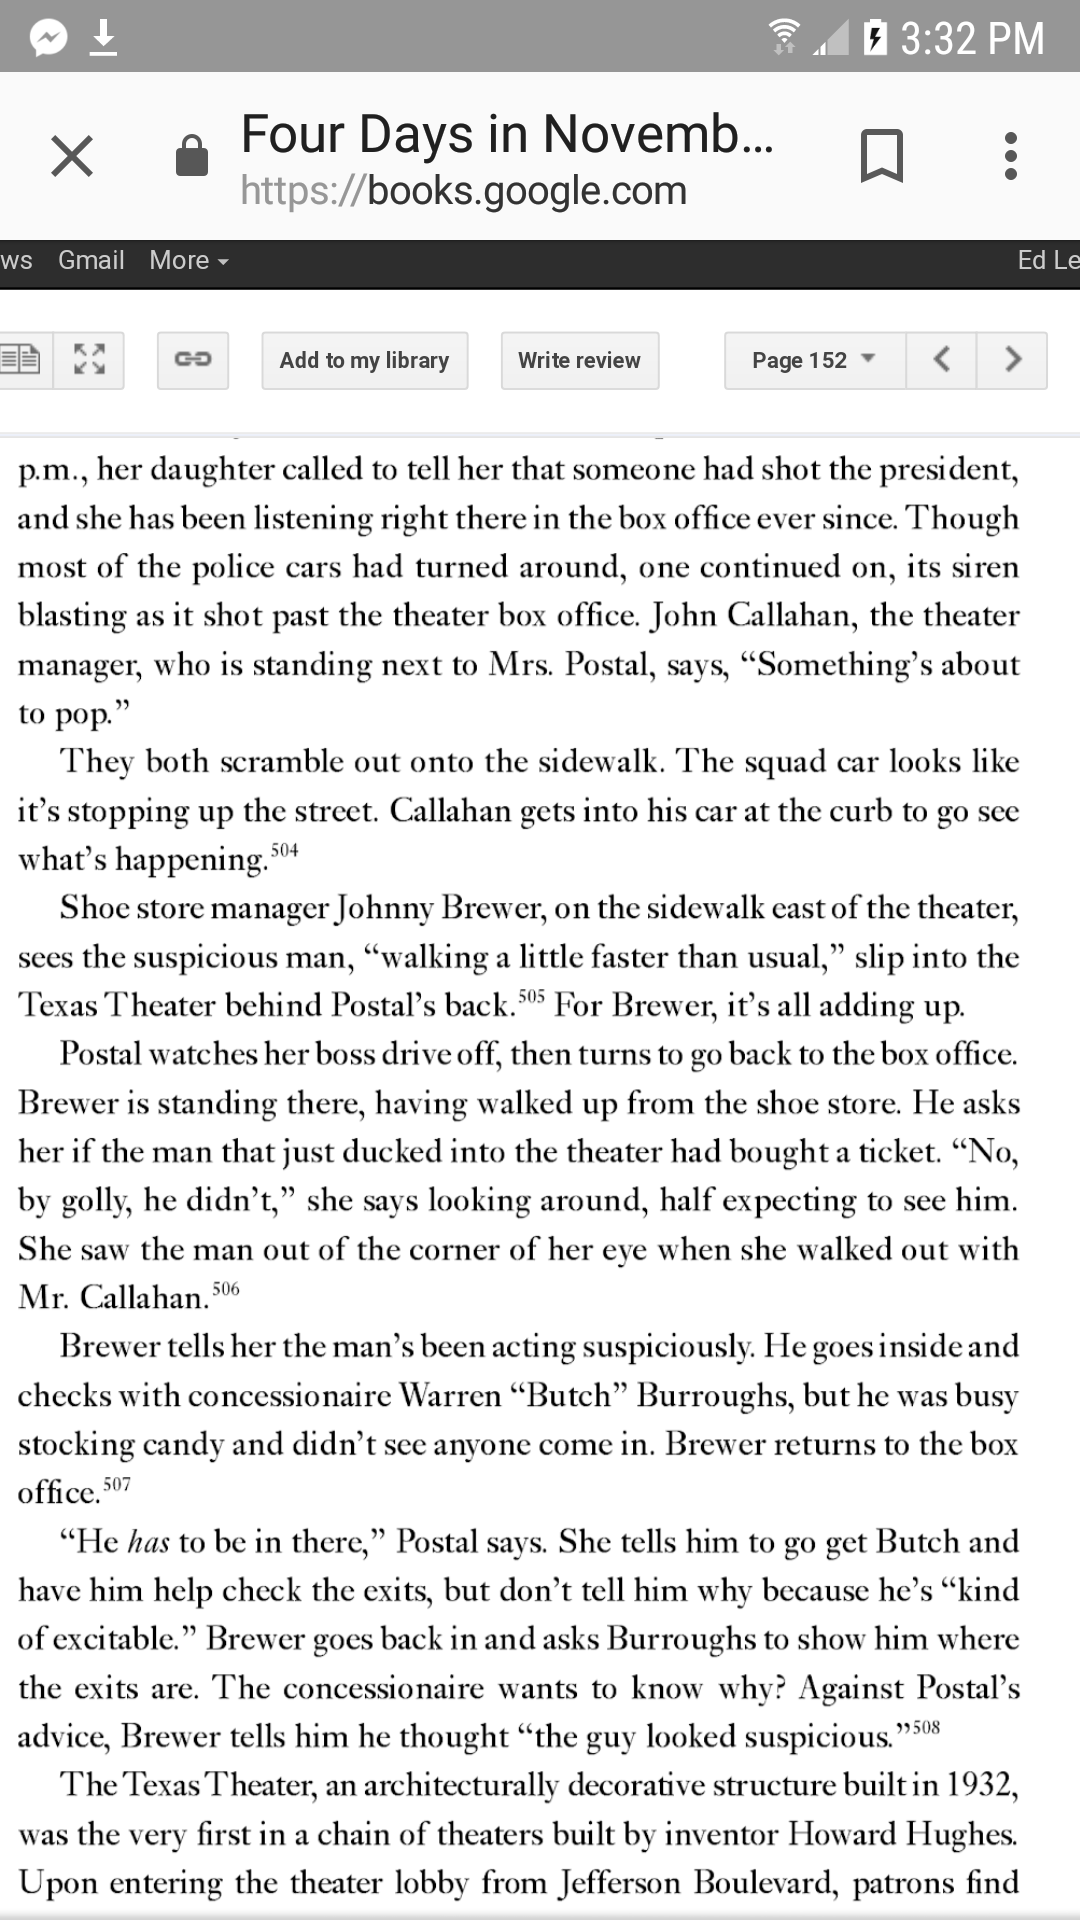 Texas Theatre Theatrics - Page 4 Screen18